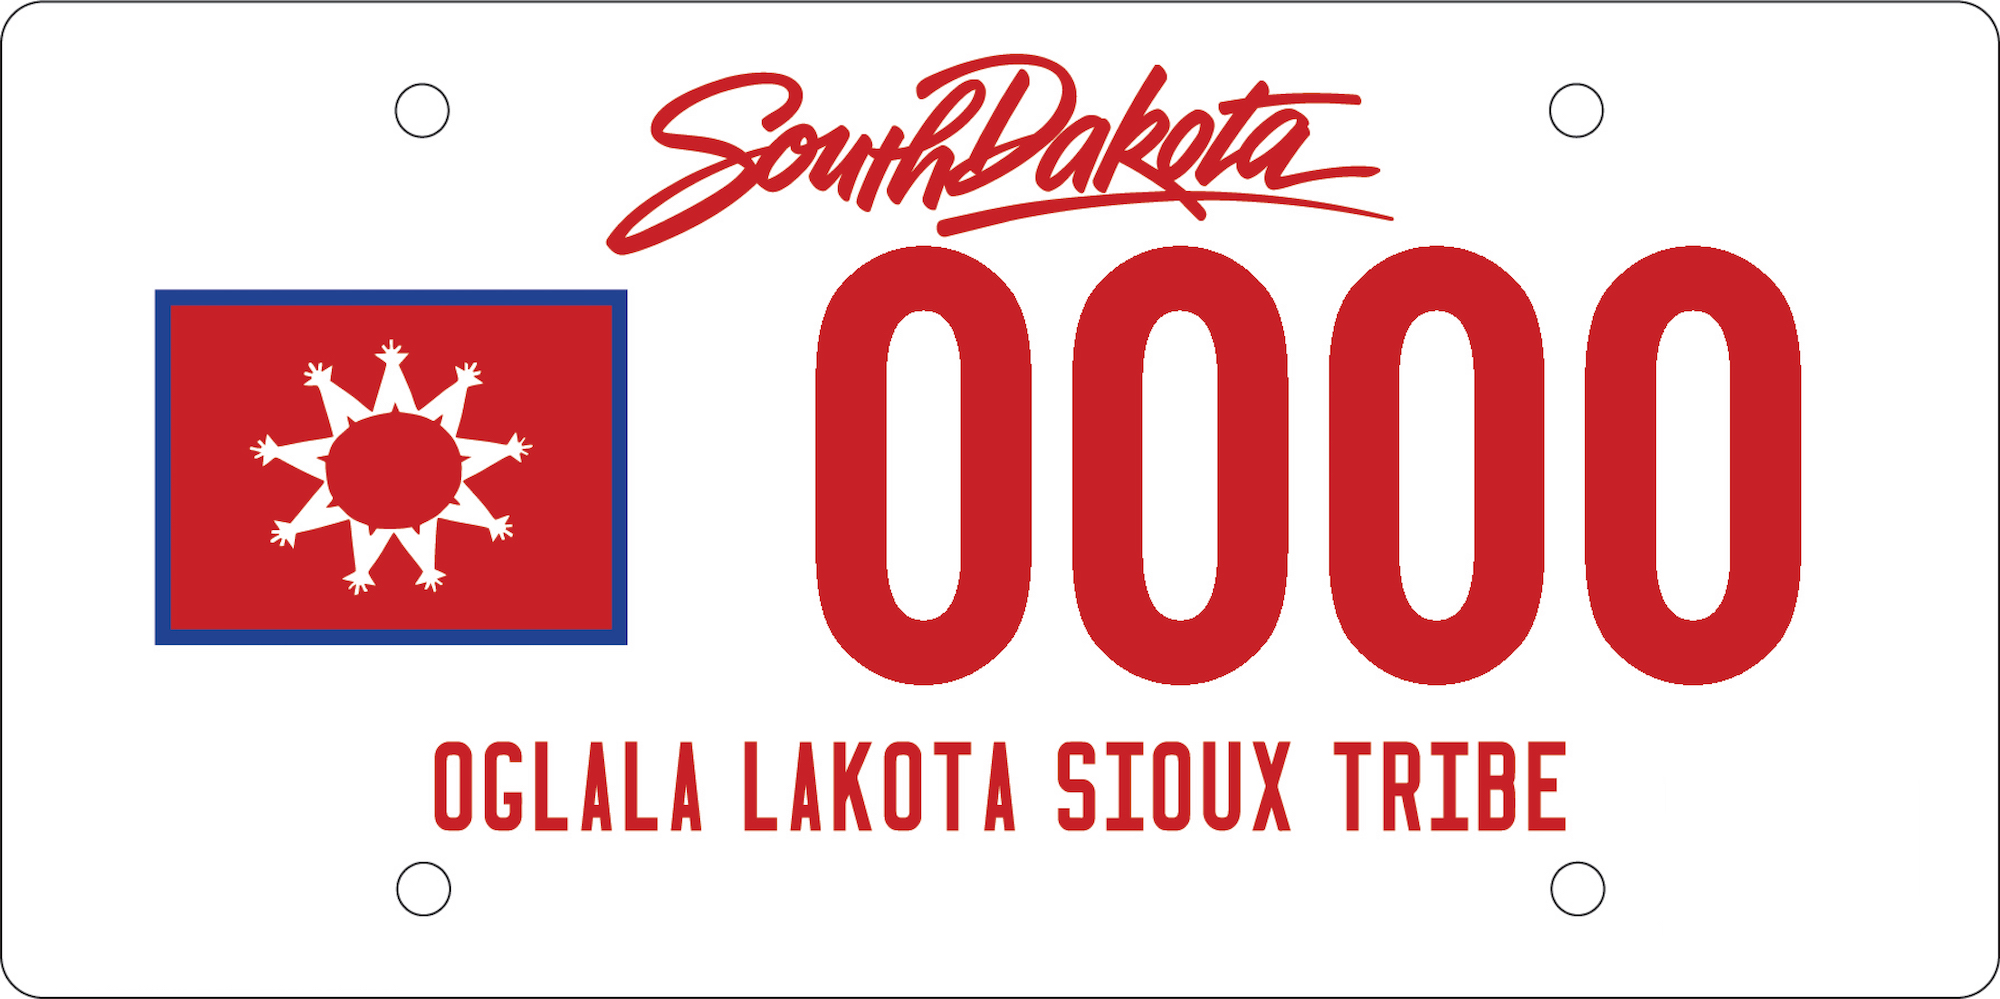 South Dakota now offering specialty license plates for all nine Sioux tribes